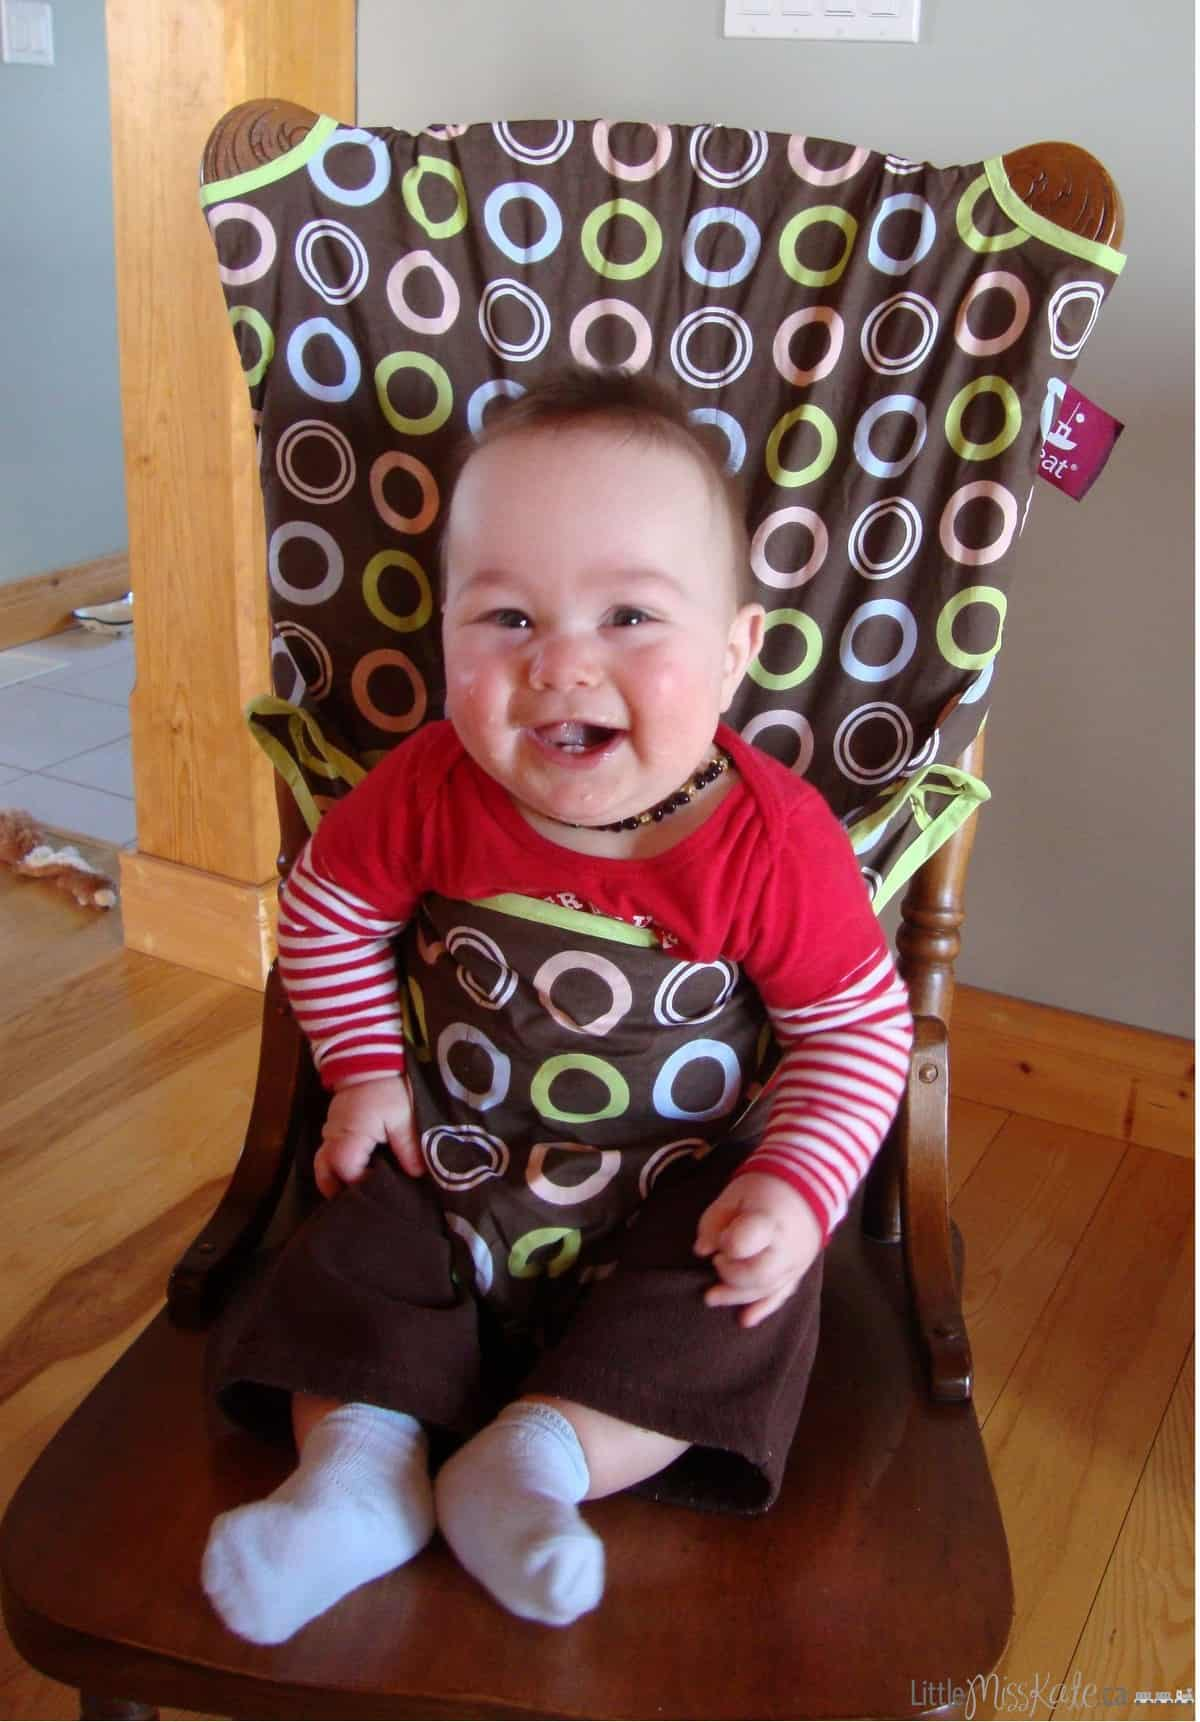 Review Totseat Travel High Chair Little Miss Kate